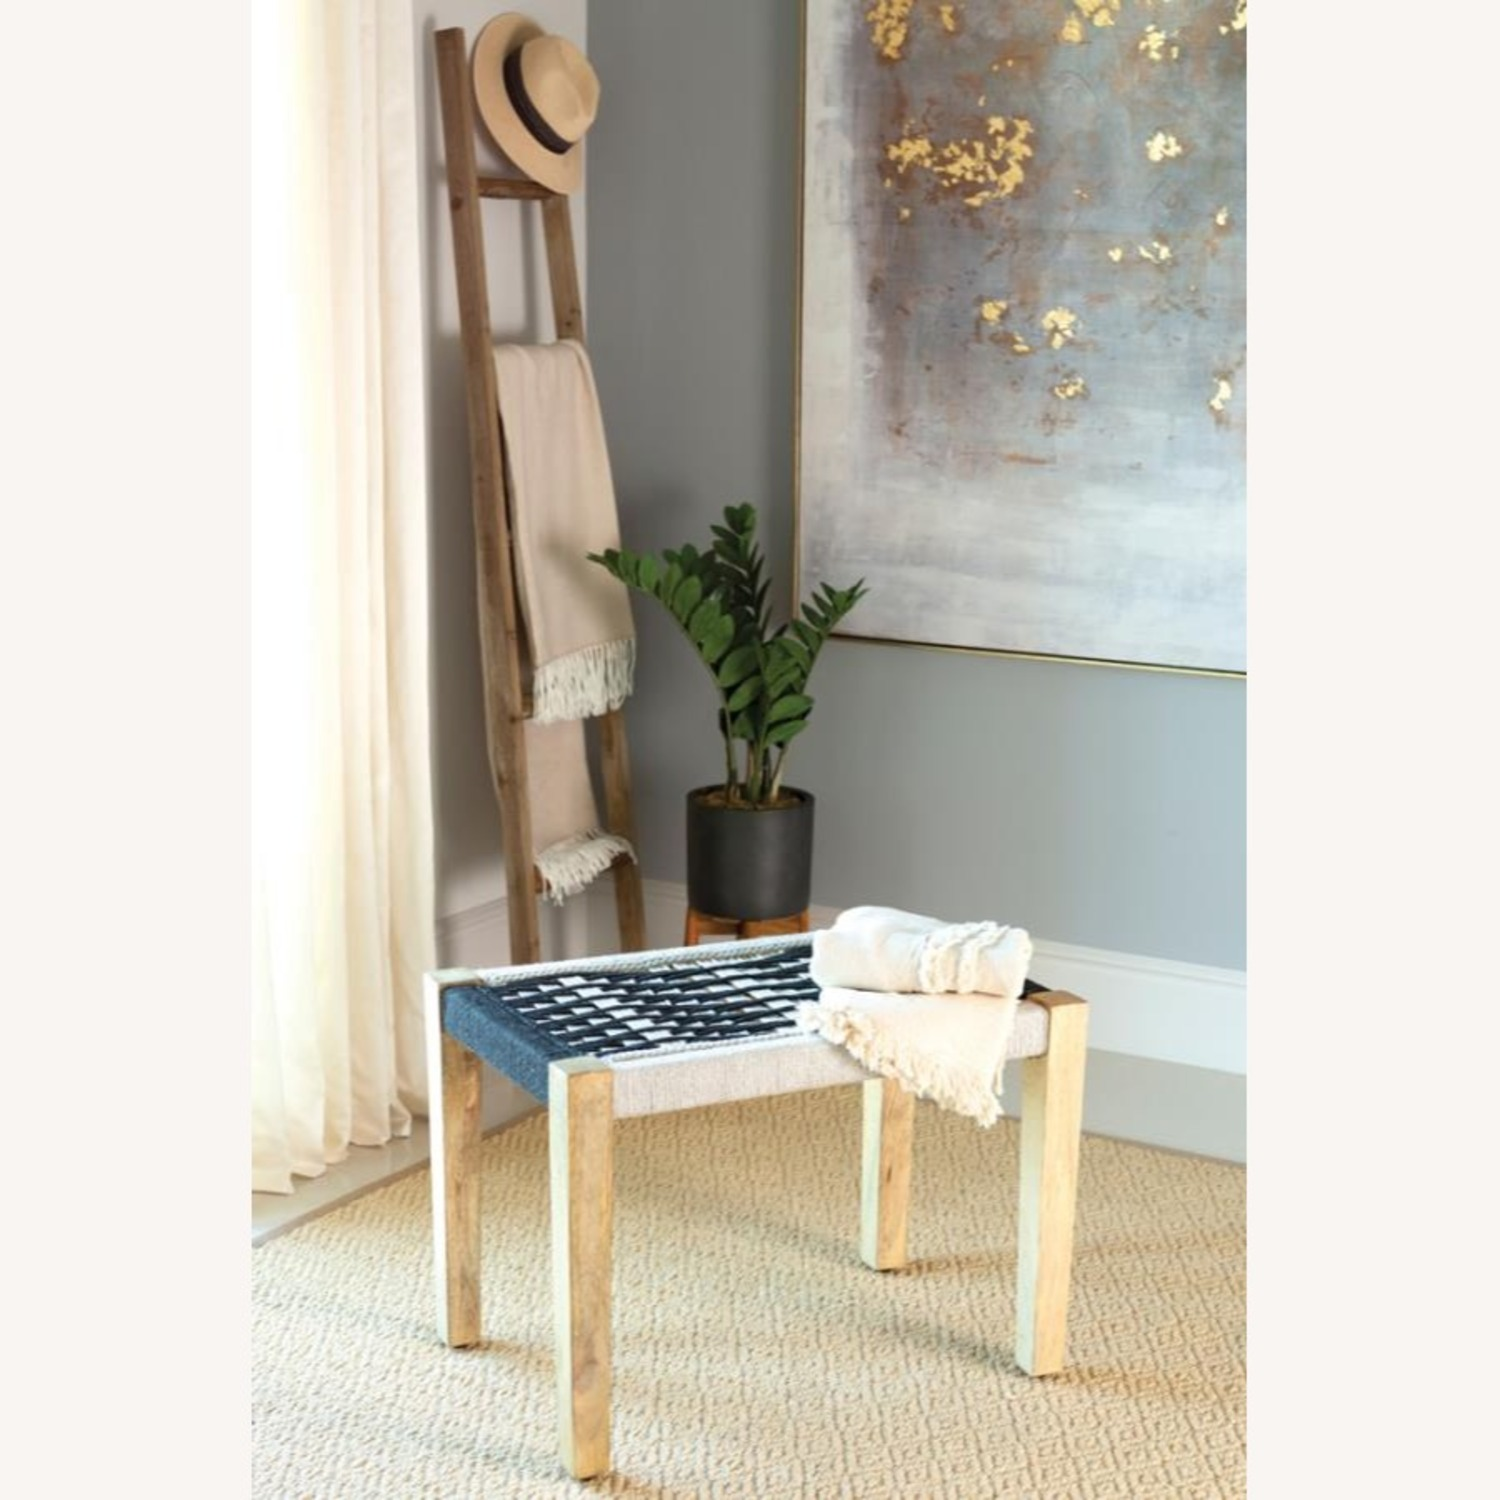 Bench In 2-Tone Black & White Woven Fabric - image-2